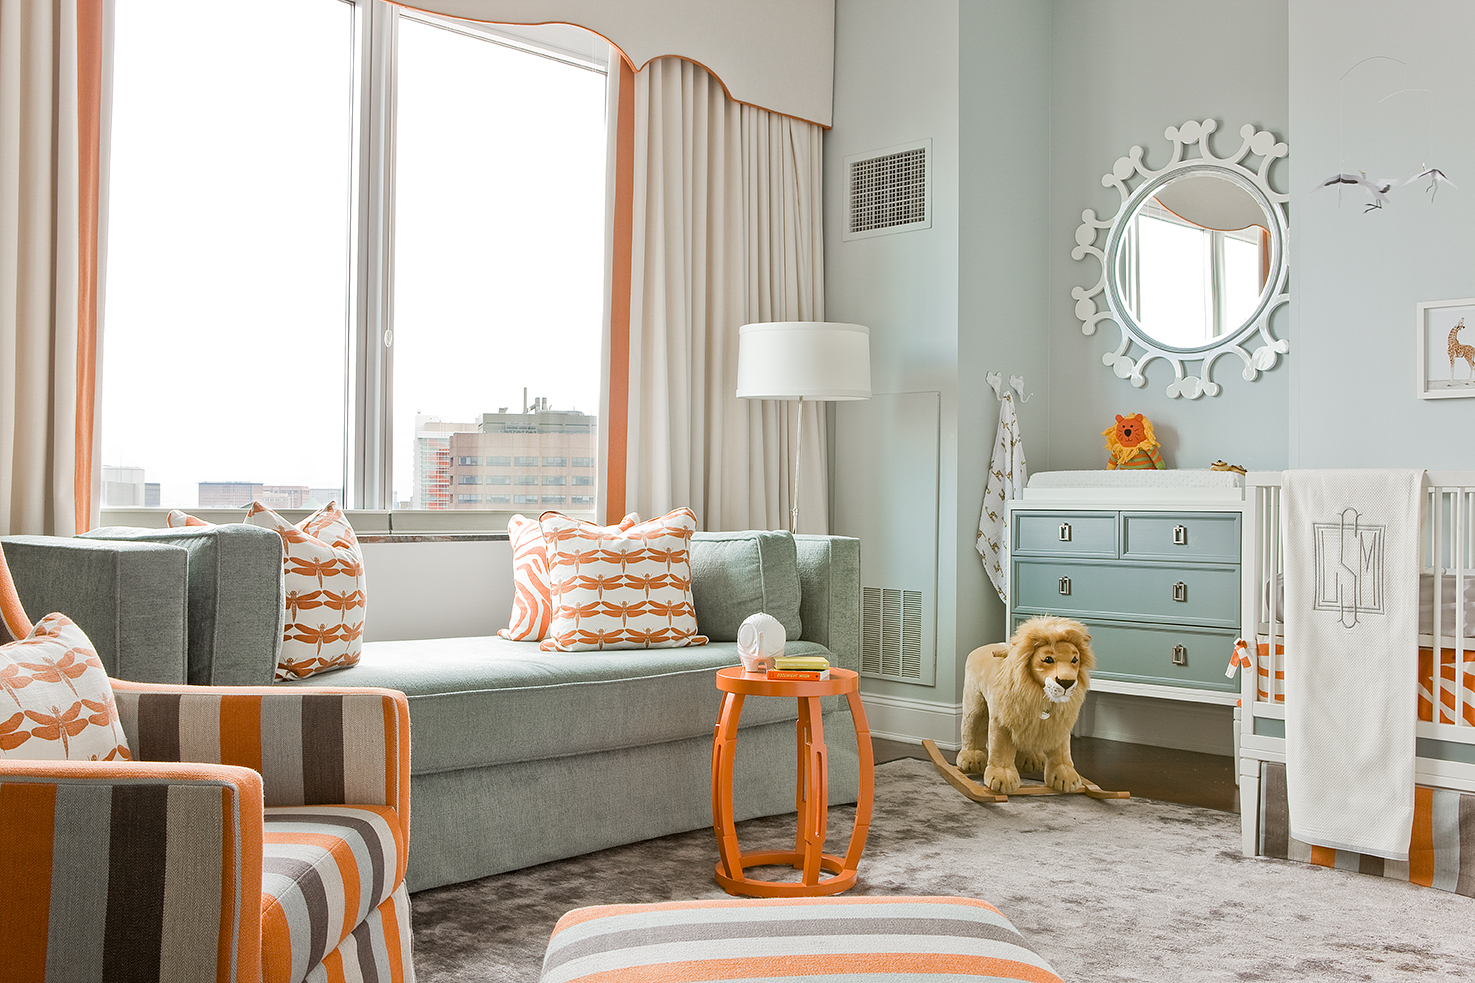 Lovejoy Interiors